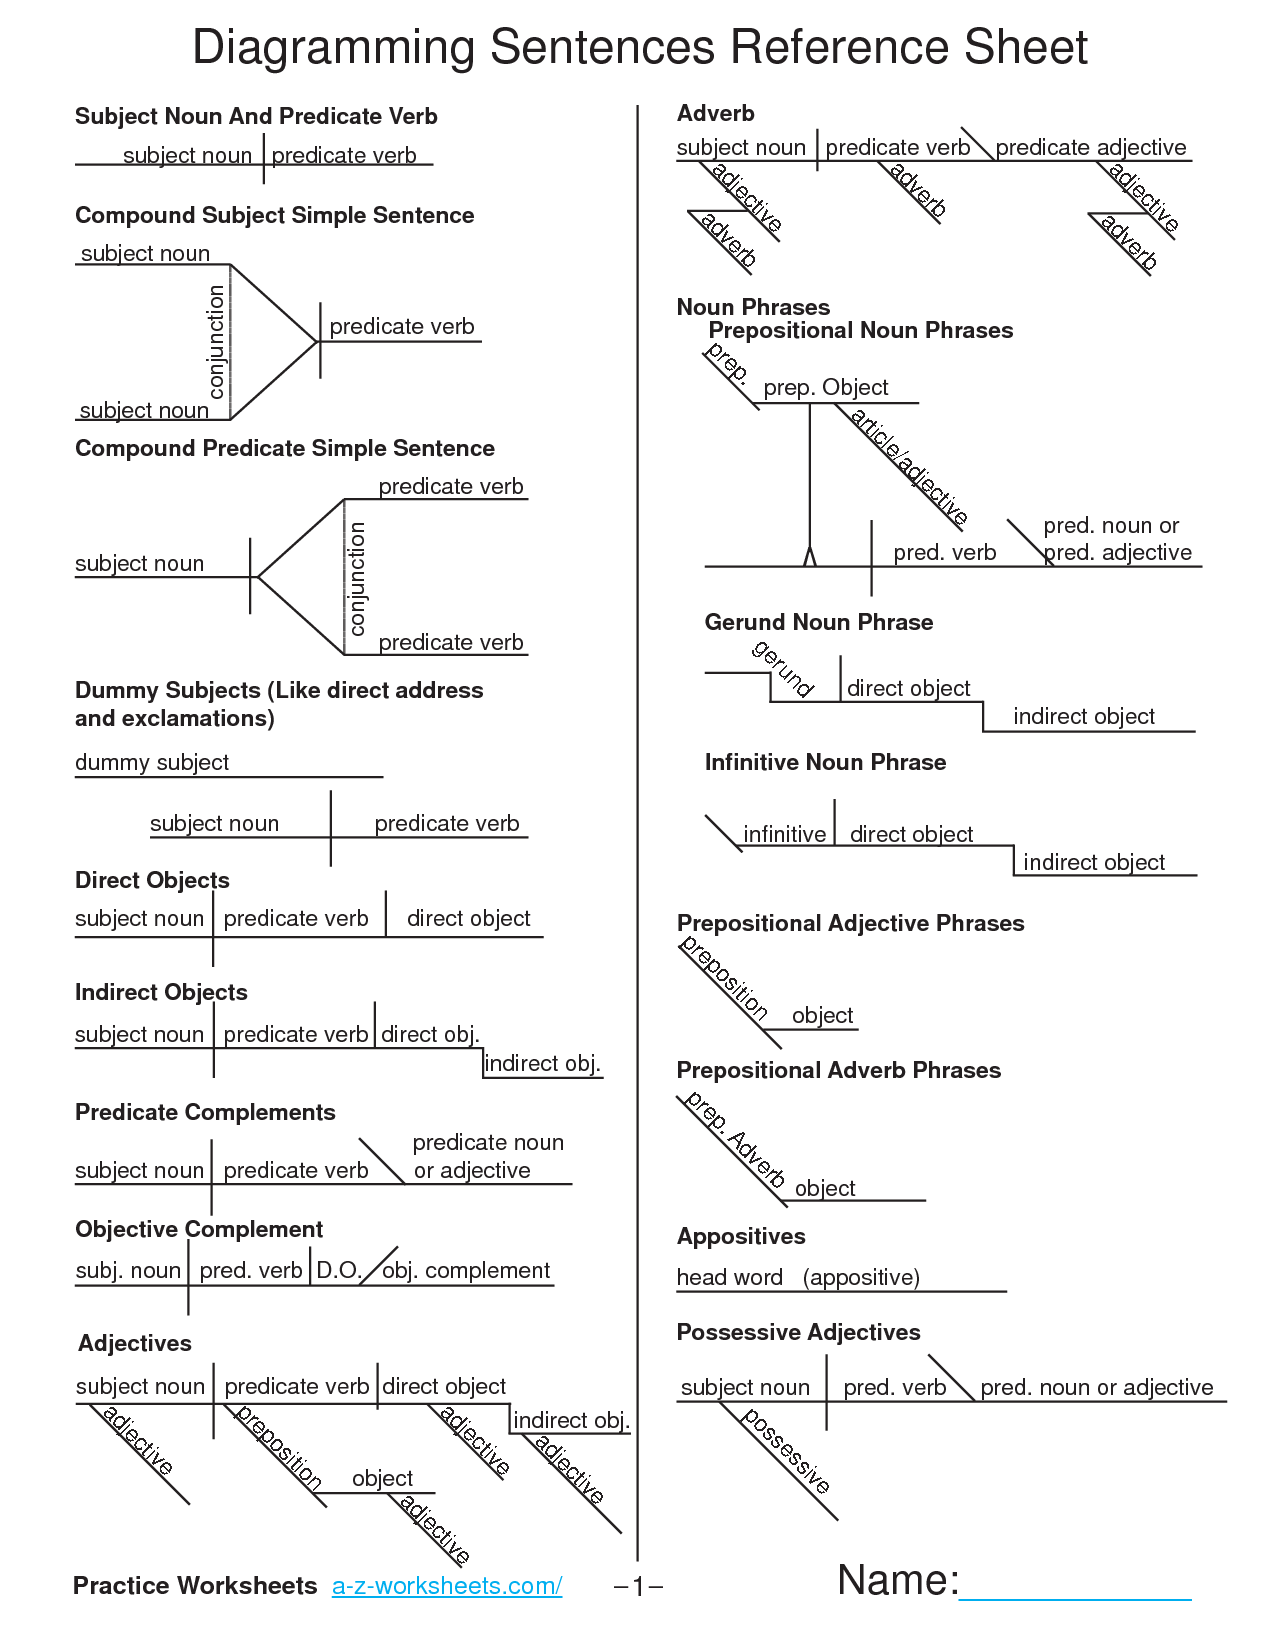 Sentence diagram worksheets simple subject and simple predicate sentence diagram worksheets simple subject and simple predicate diagramming sentences worksheets ccuart Image collections